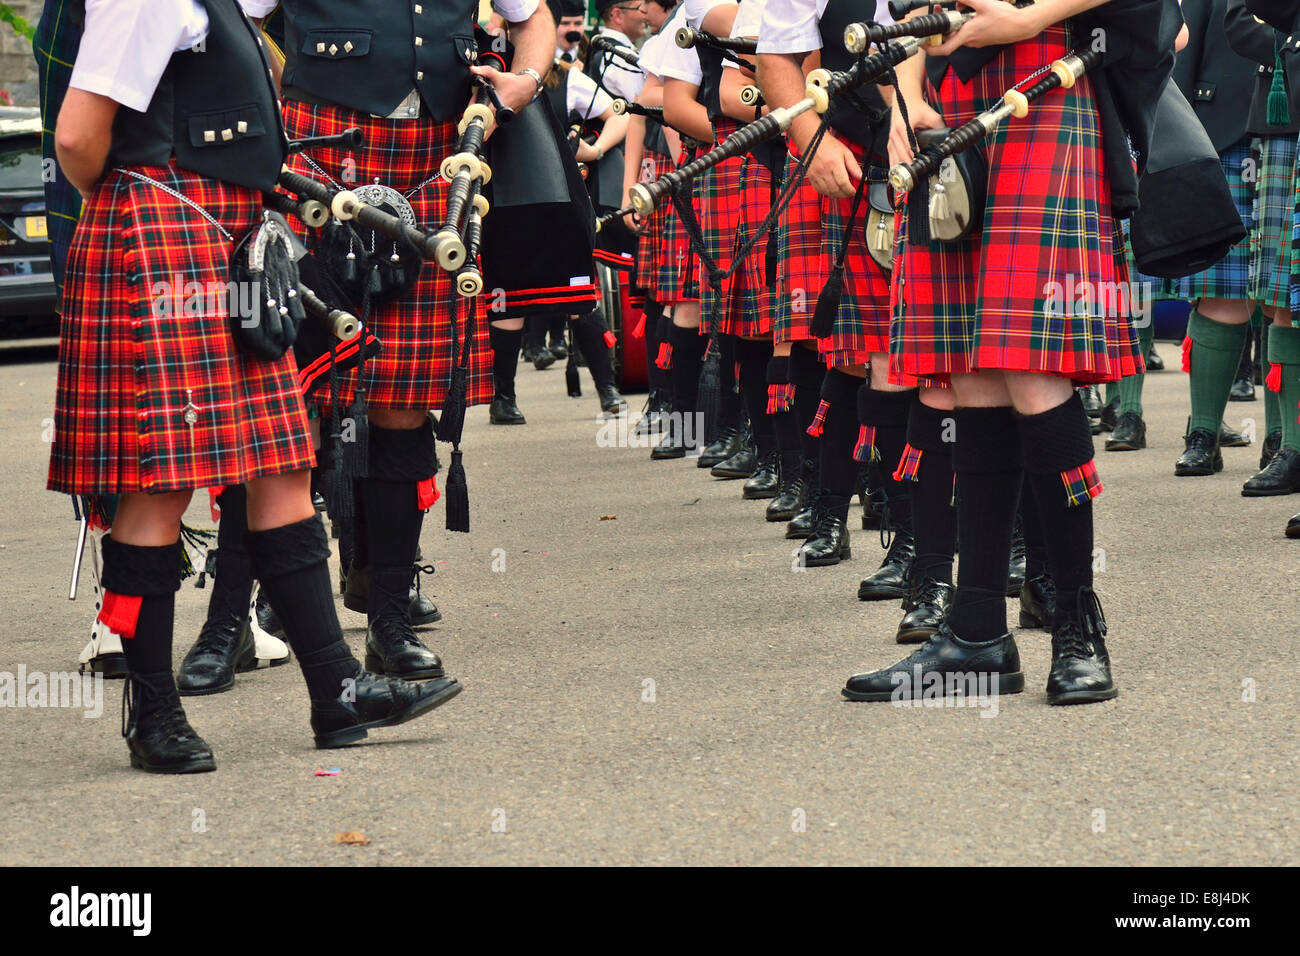 Members of a pipe band wearing kilts, with sporrans and bagpipes, before a performance, Dufftown, Moray, Highlands, - Stock Image